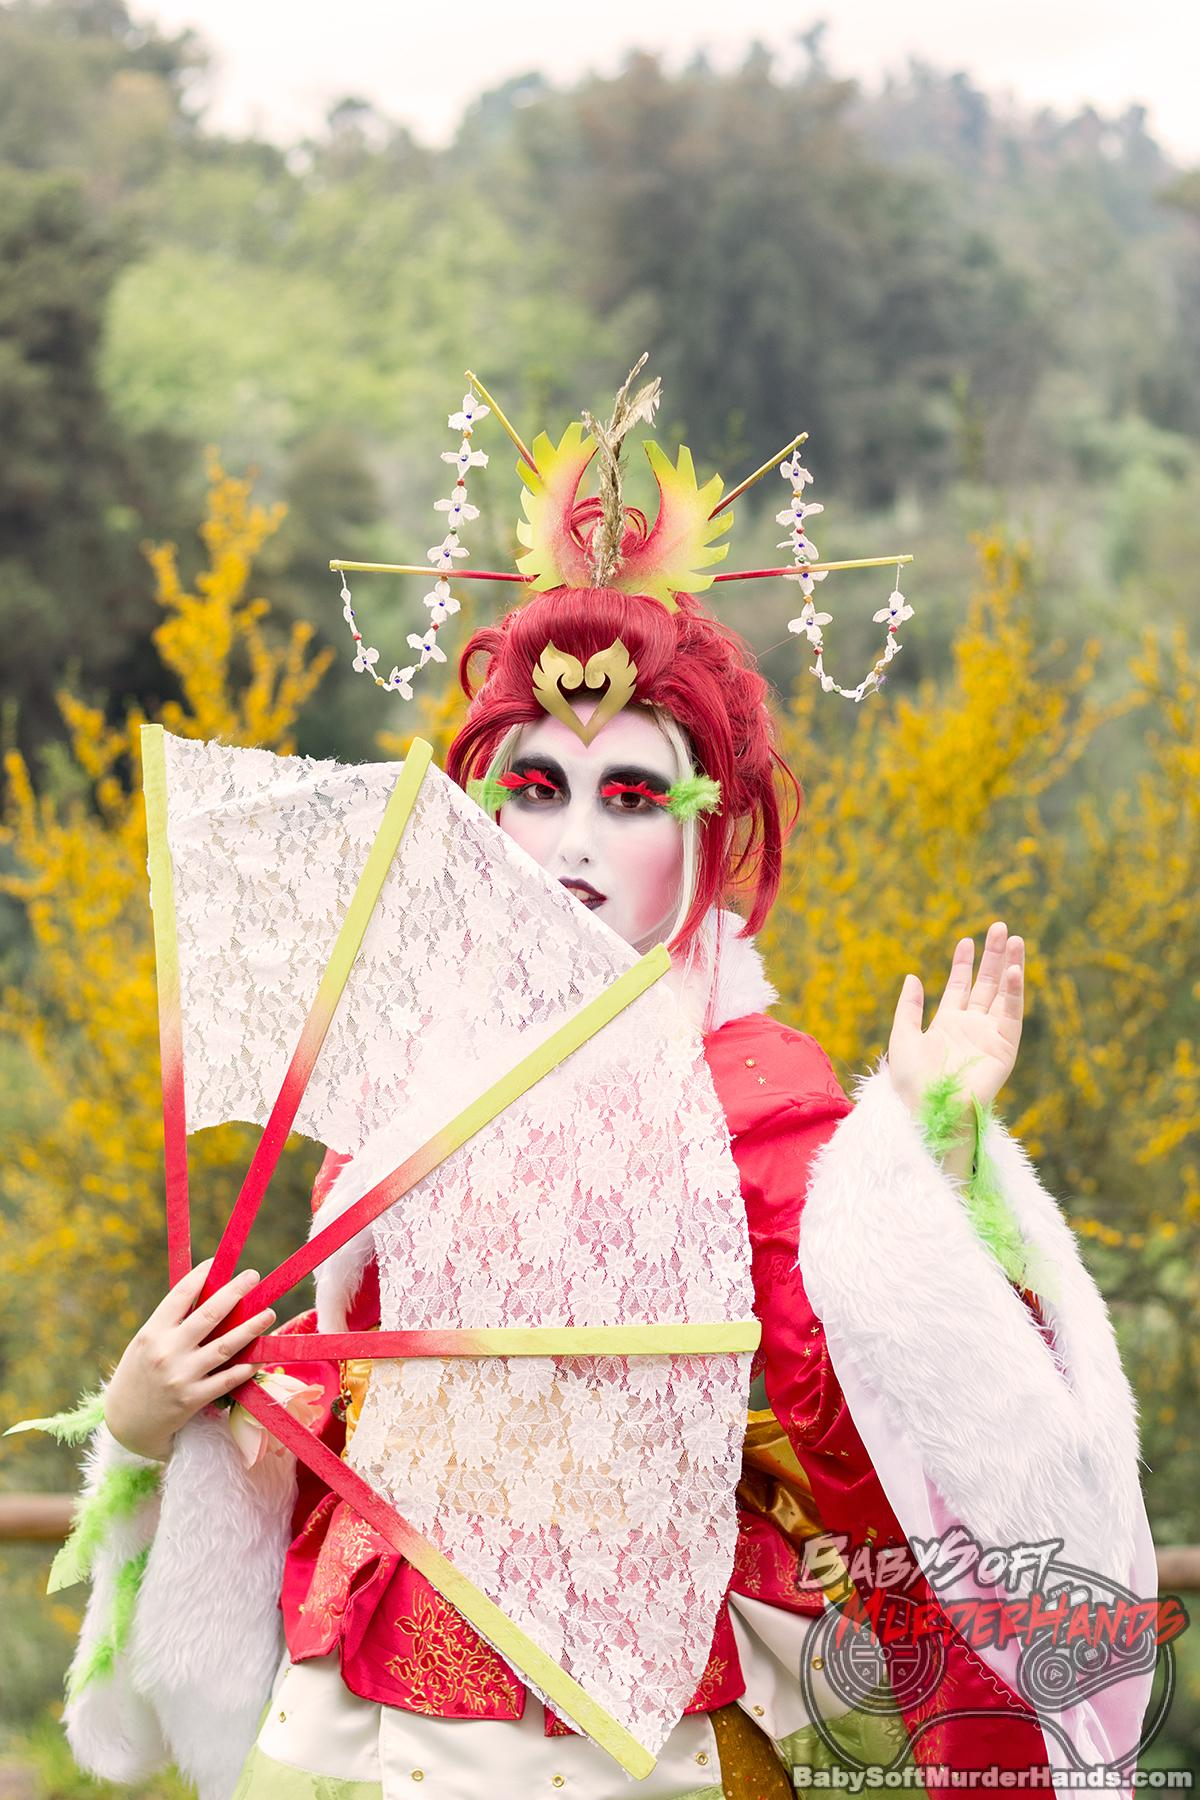 ho-oh pokemon gijinka cosplay